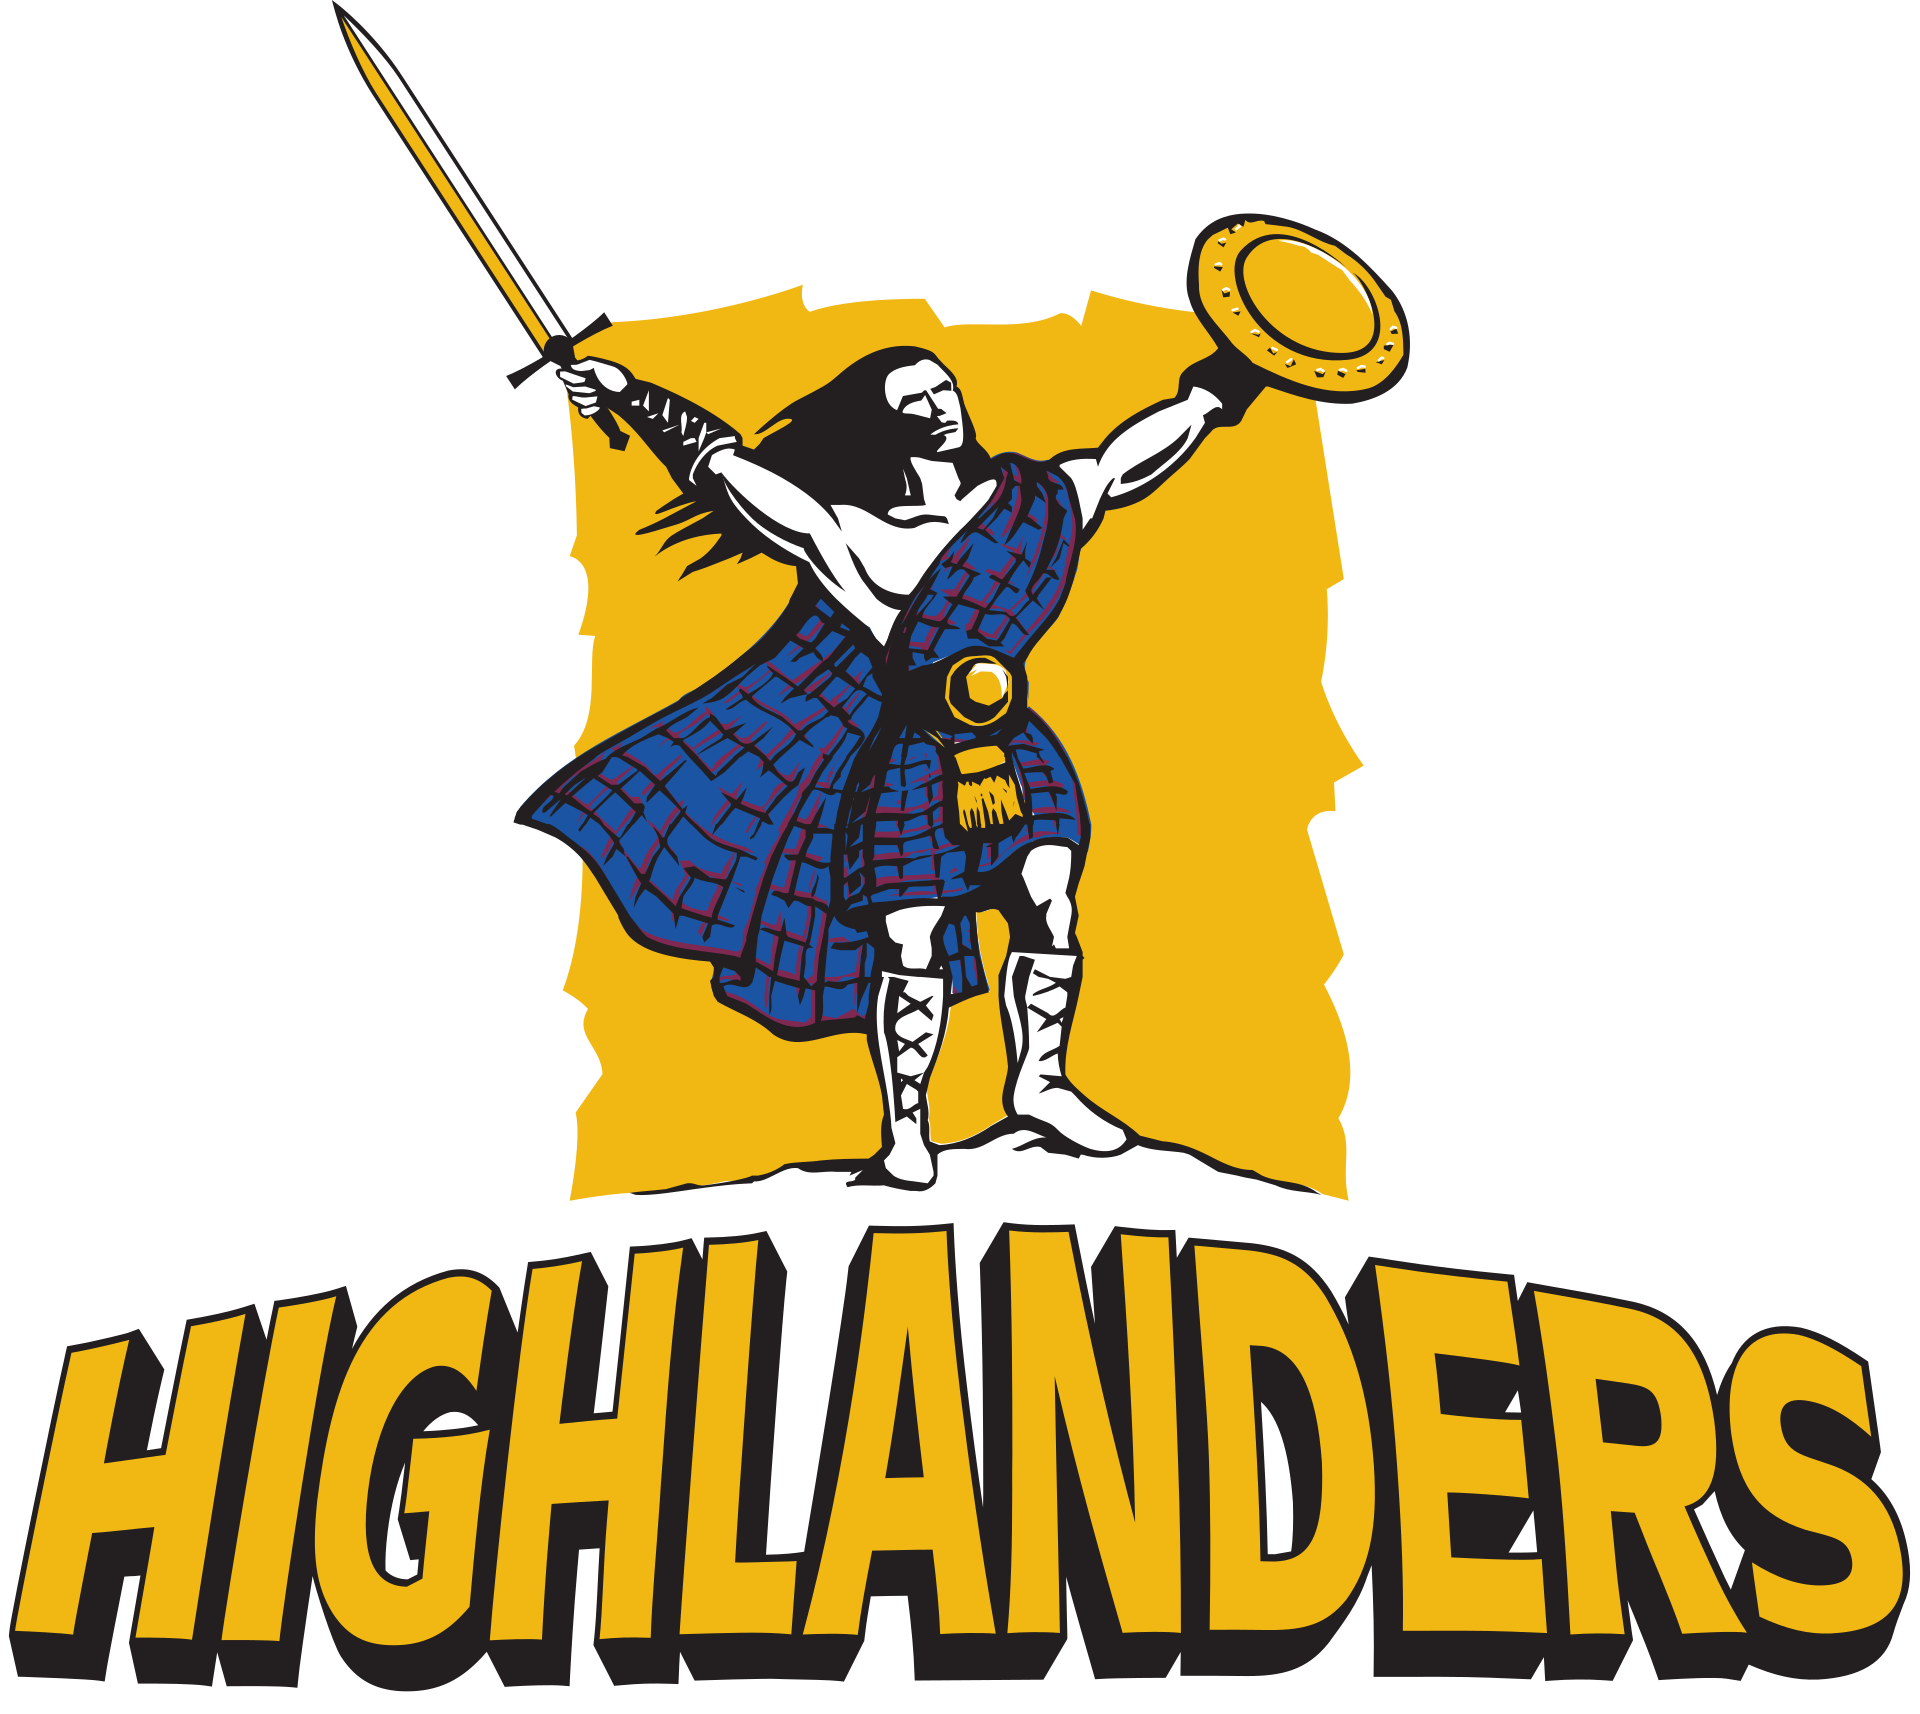 Official painting sponsor of the Highlanders